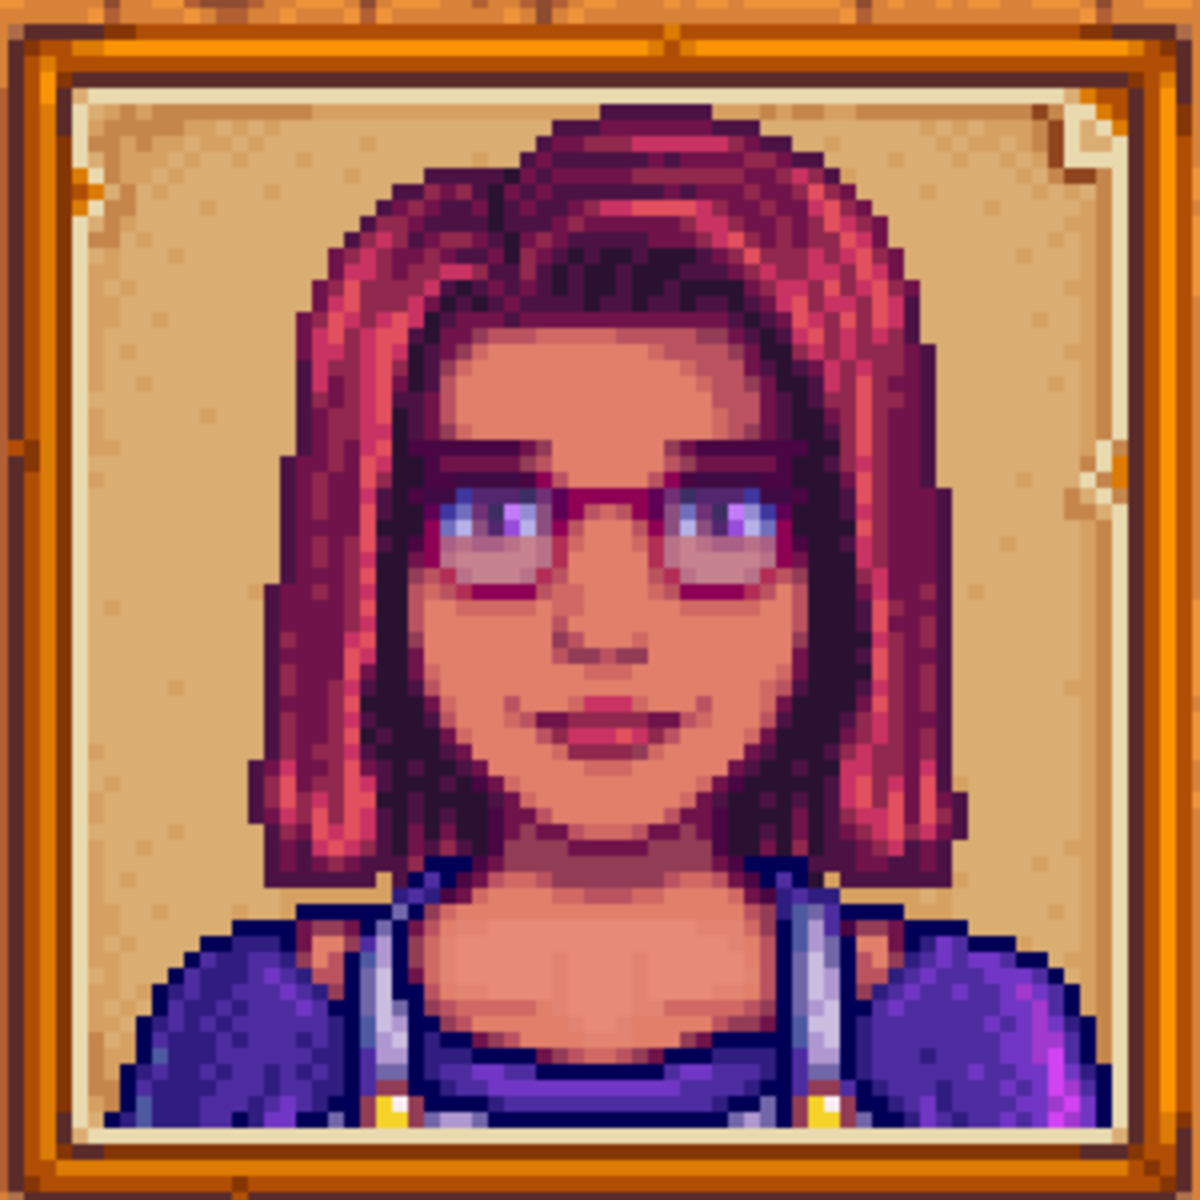 Maru lives in the mountains with her parents, Demetrius and Robin, and her half-brother Sebastian.